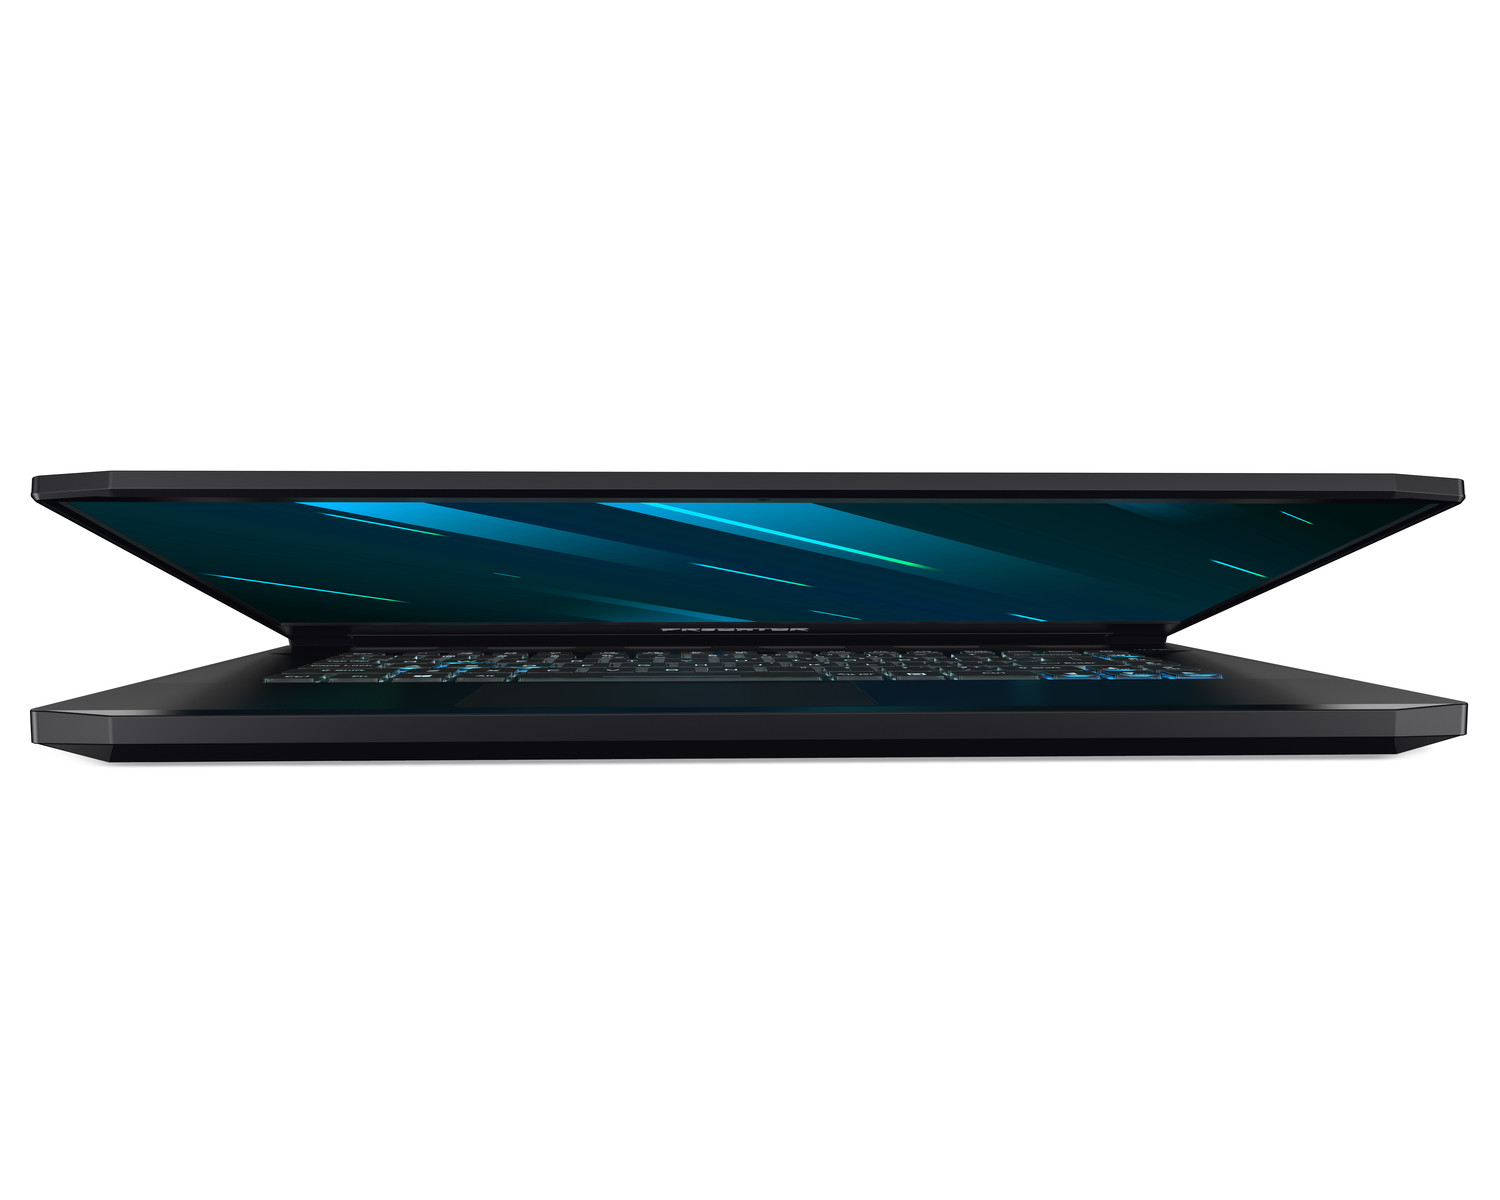 Acer's New Gaming Laptop Comes With a Crazy Hinge